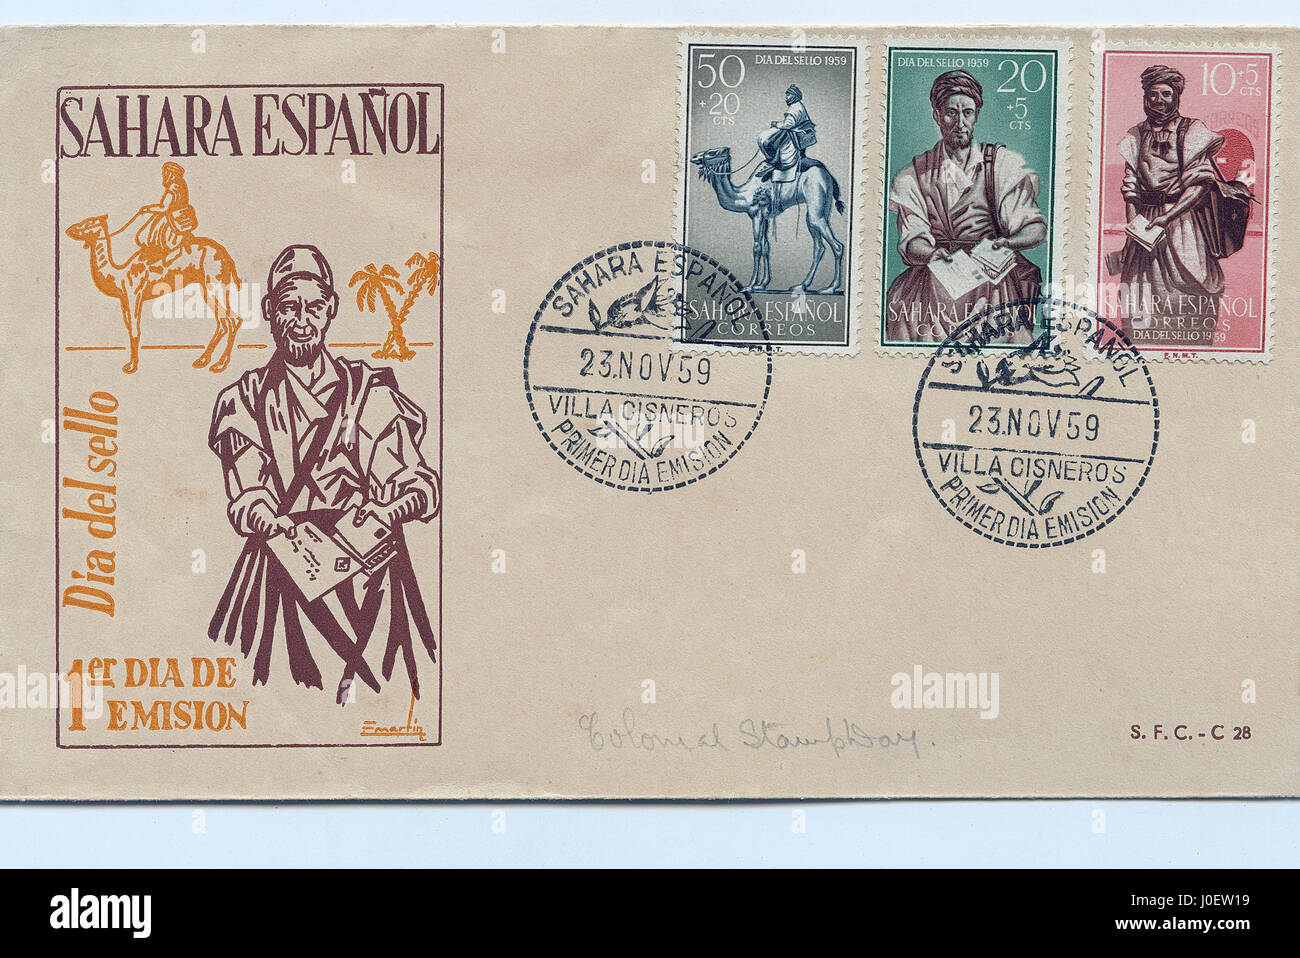 First day cover of sahara espanol, postage stamps - Stock Image